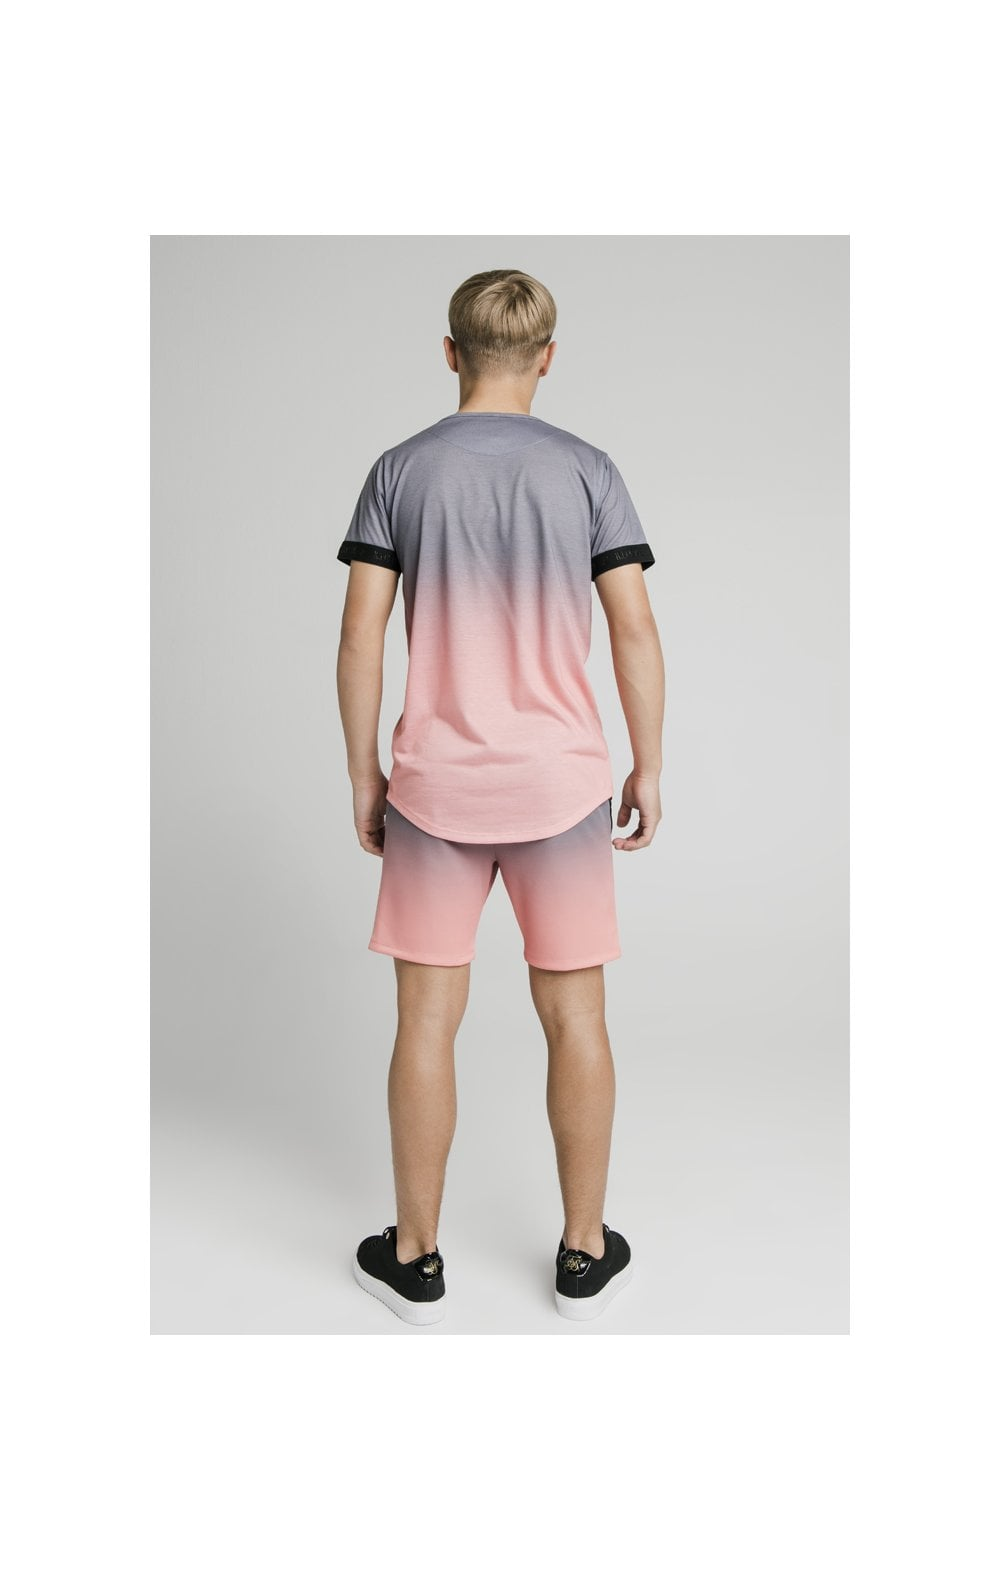 Load image into Gallery viewer, Illusive London Fade Tech Tee - Grey & Peach (8)